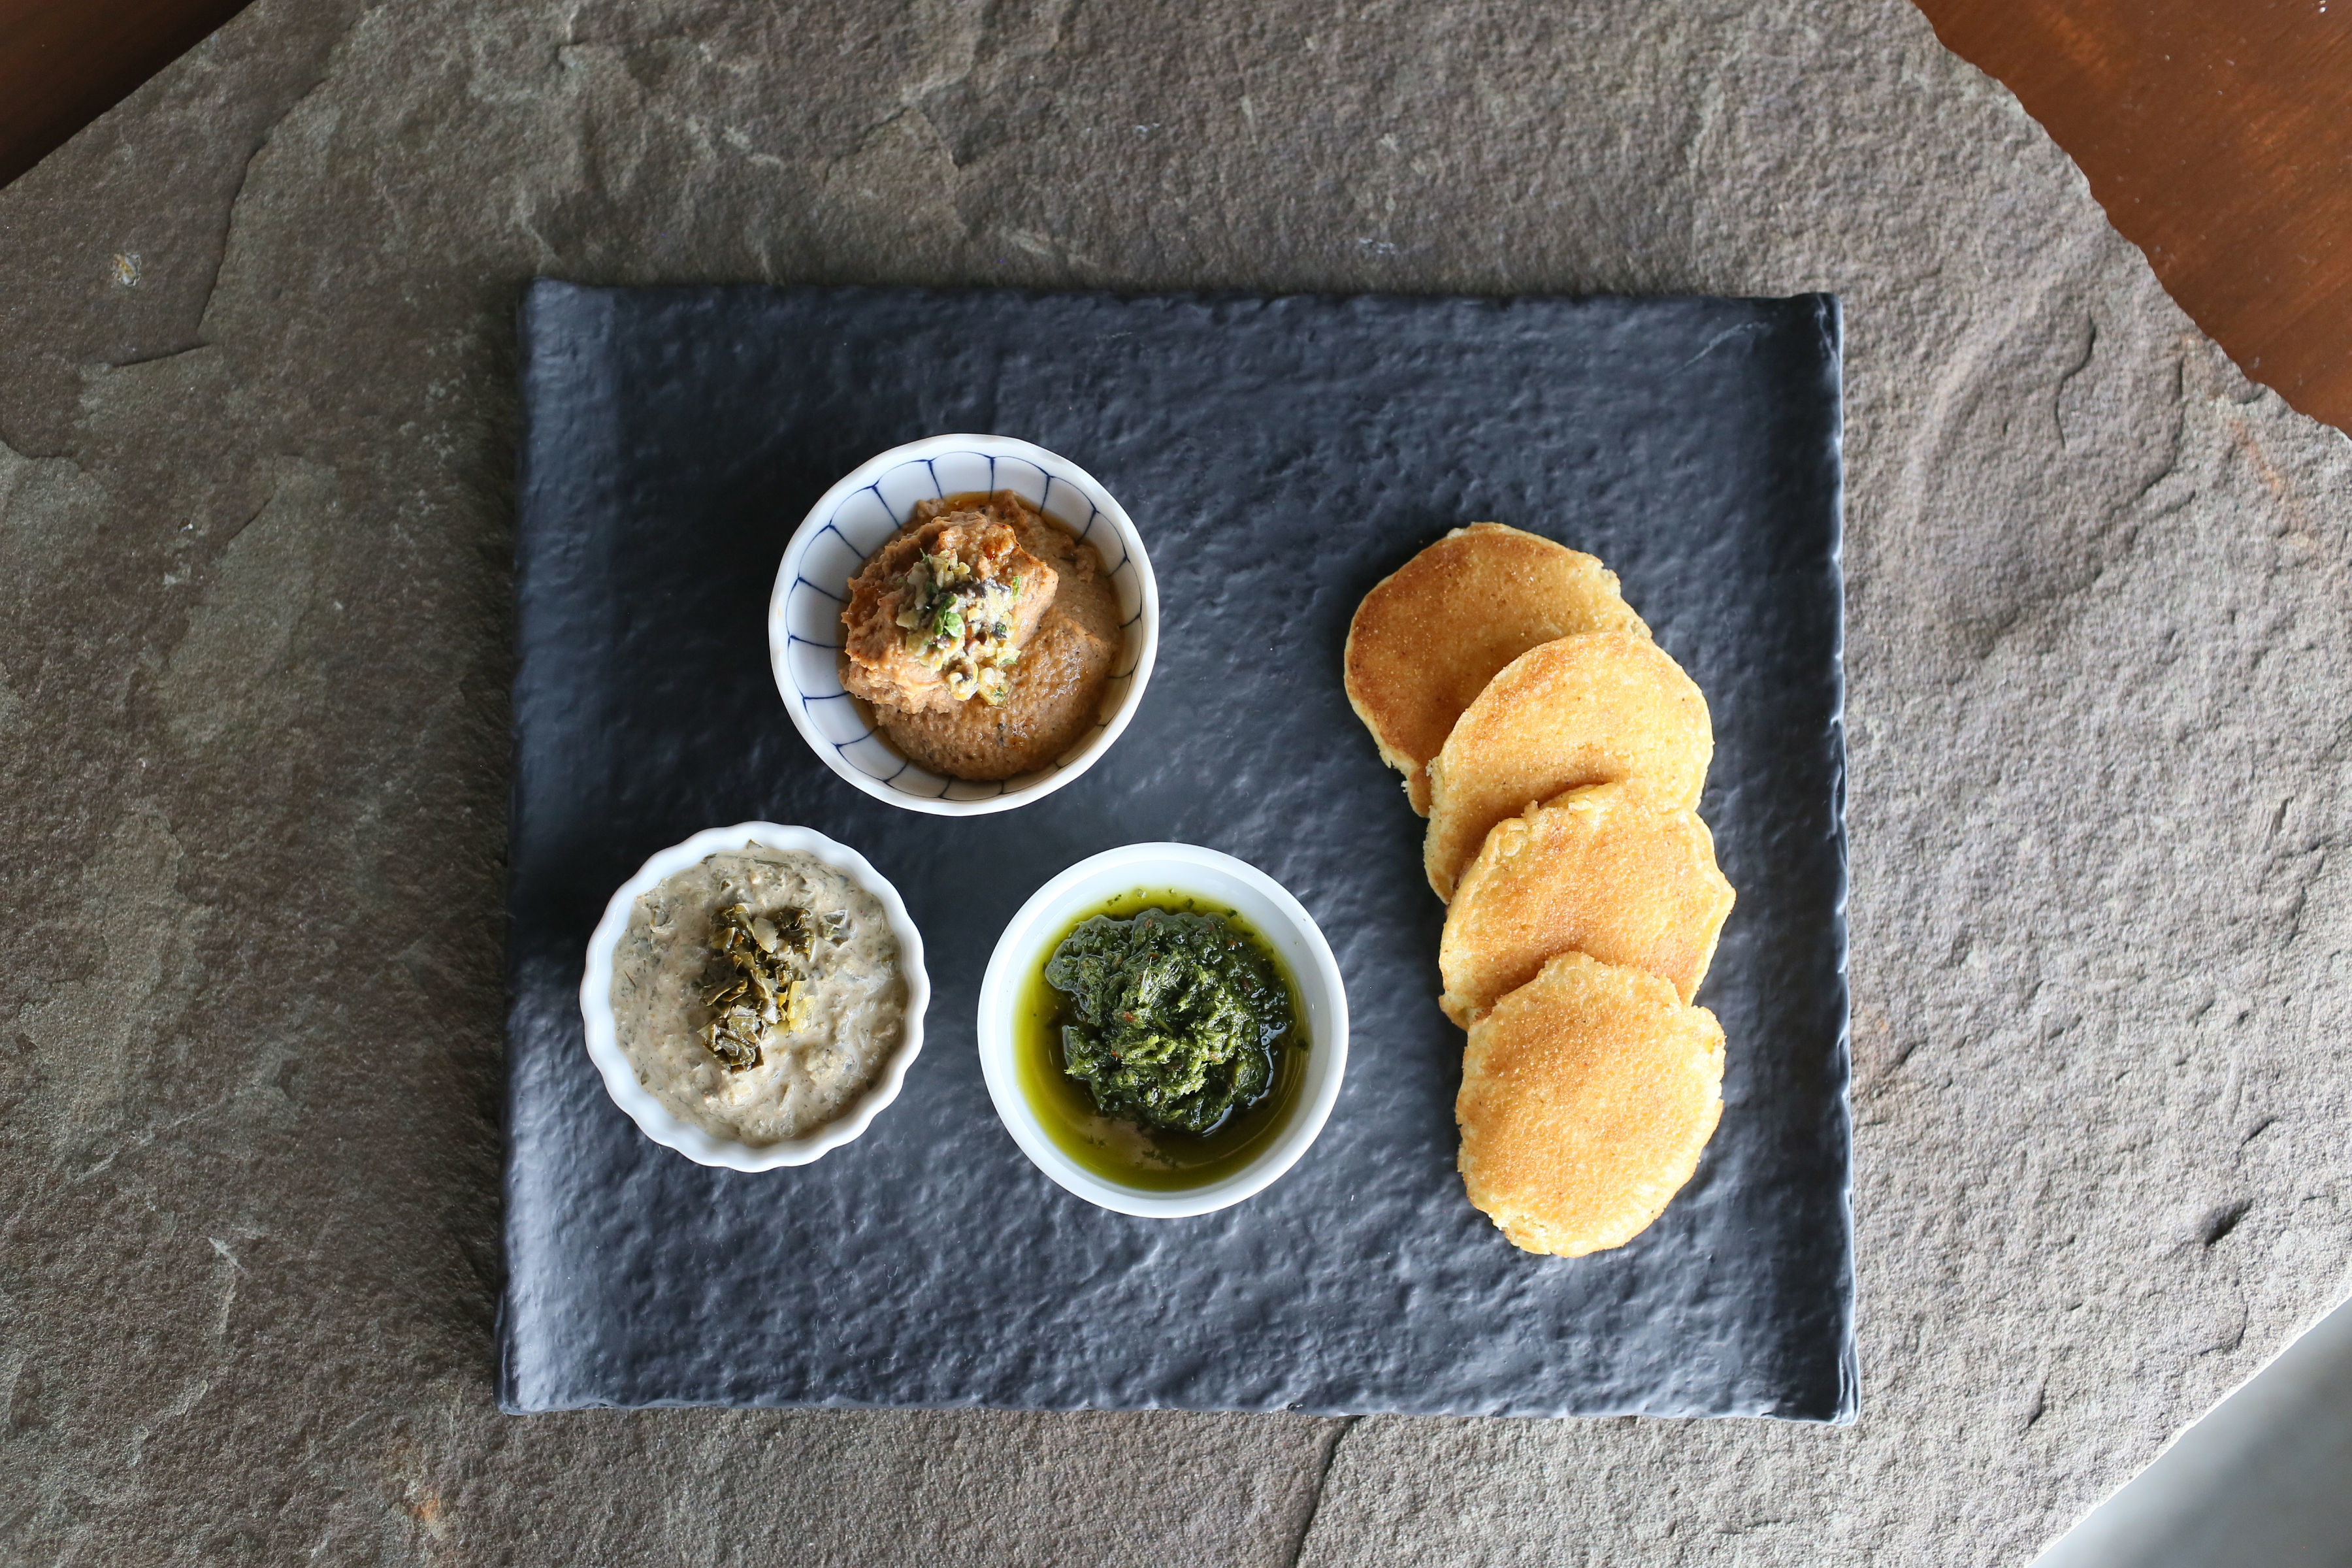 Black eyed pea hummus, roasted collard green dip, and zhug (a Yemenese hot sauce) on a plate next to four pieces of bread